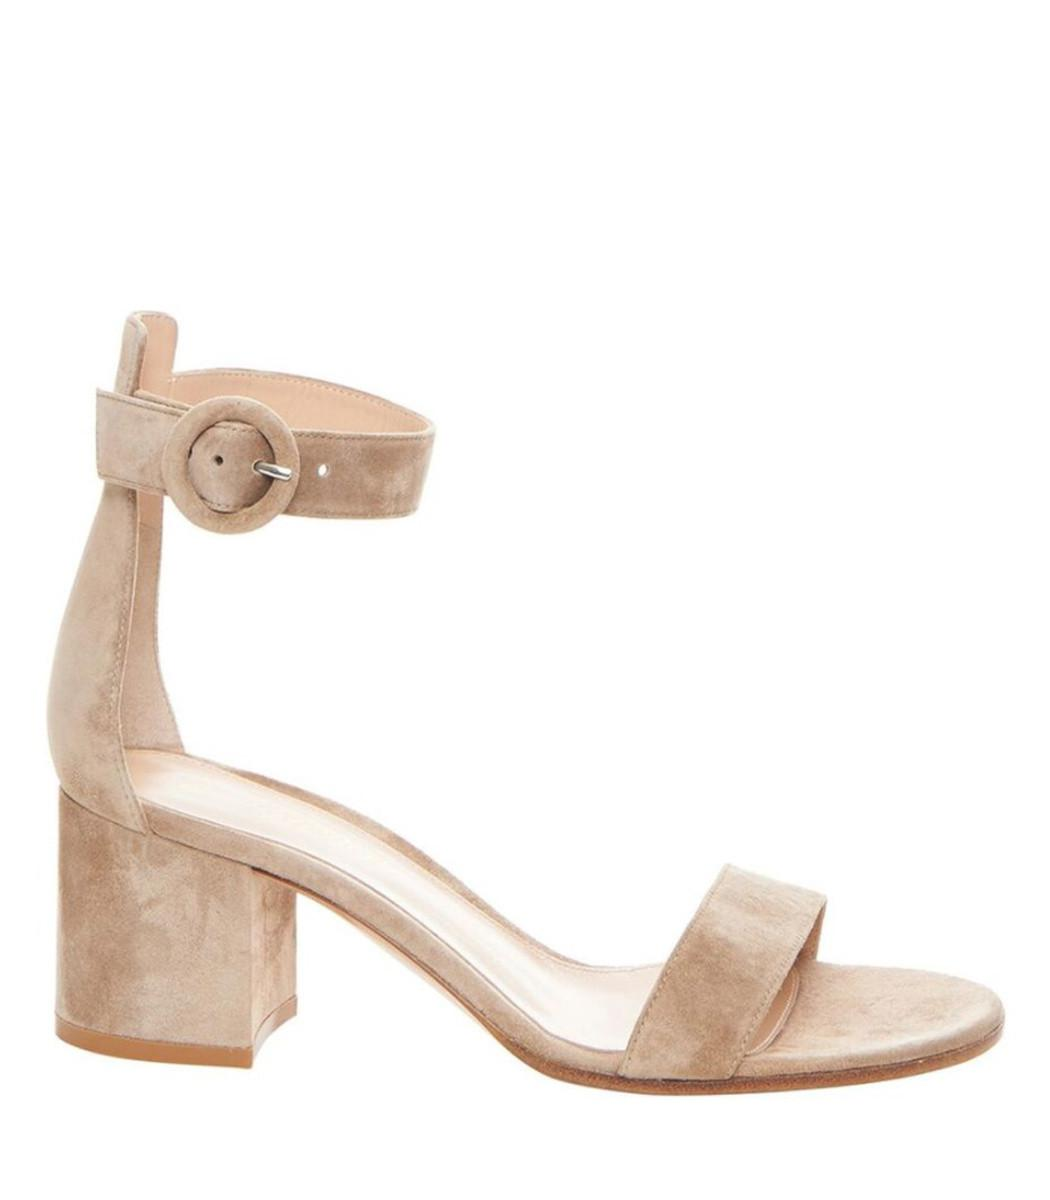 3a2c4a0b0cea3 Lyst - Gianvito Rossi Nude Suede Heeled Sandal in Natural - Save ...